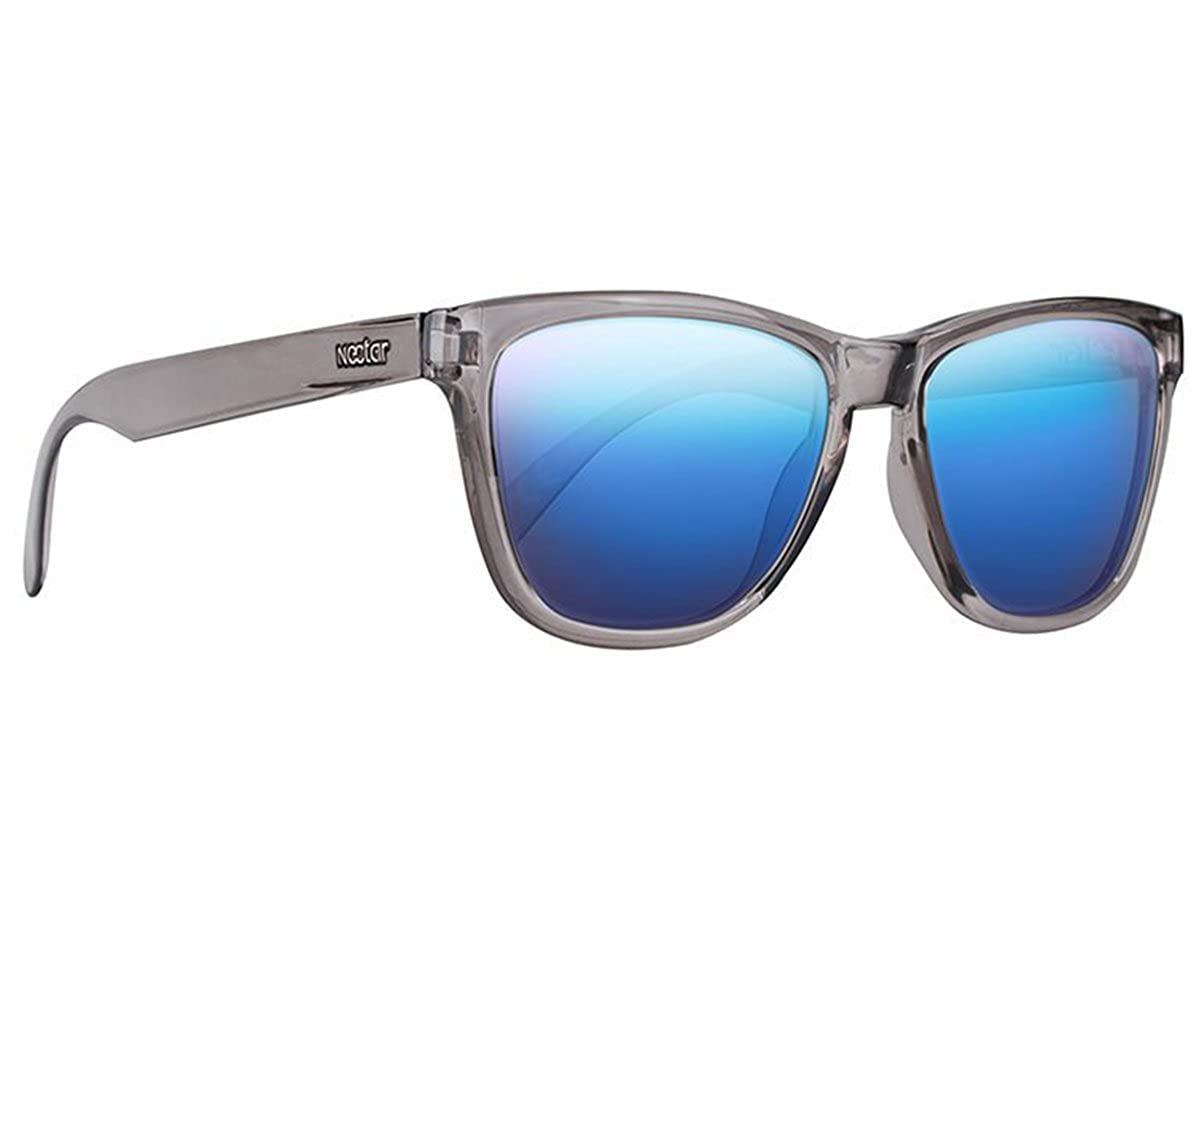 0eabfc8ffe Amazon.com  Classic Grey Flex Frame Polarized Sunglasses - Swiss TR90  Themoplastic - With Blue Mirror UV Protection Lenses For Men   Women - The  Actic By ...